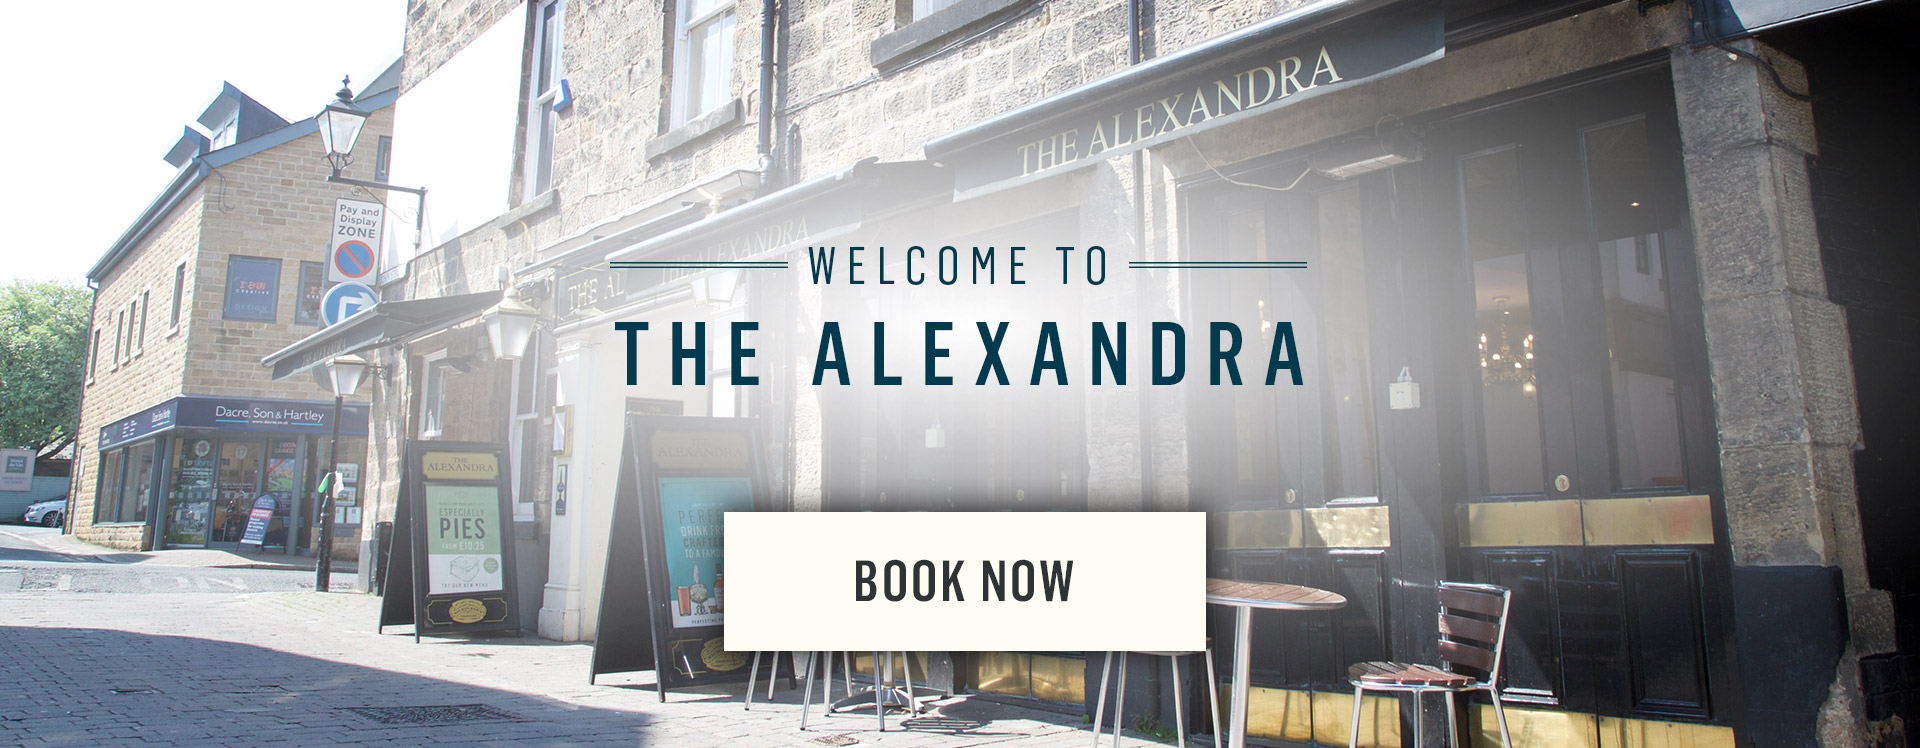 Welcome to Alexandra - Book Now